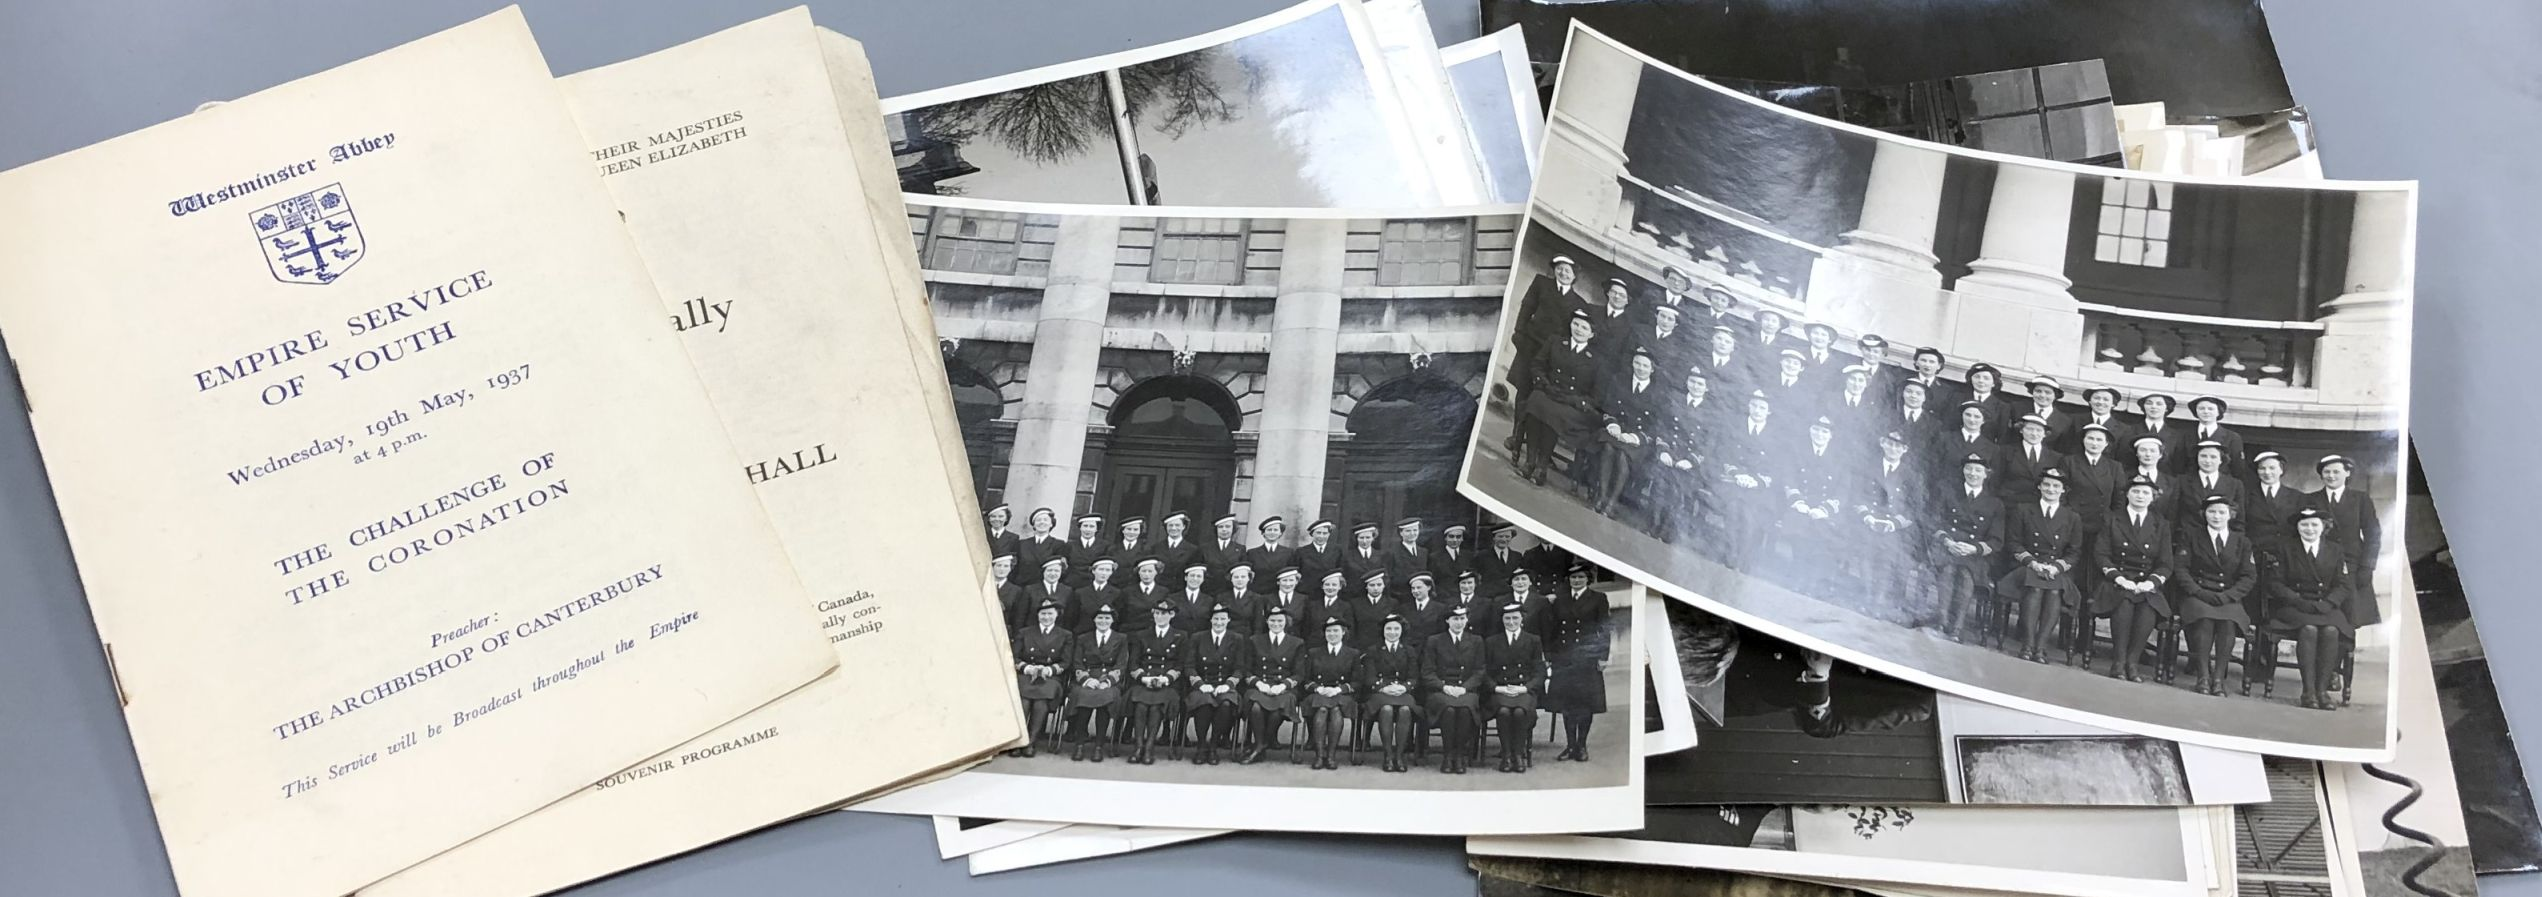 Lot 305 - A quantity of photographs relating to The Women's Royal Naval Service